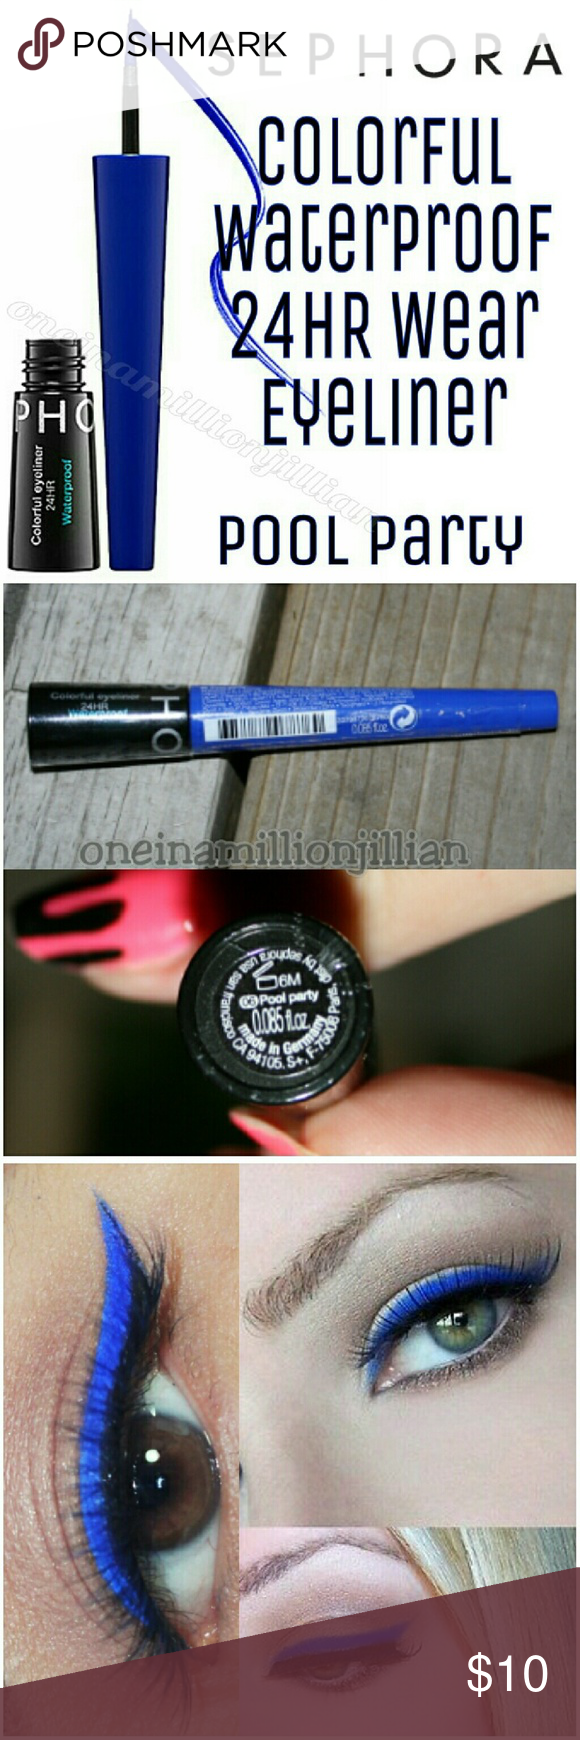 Colorful Waterproof Eyeliner 24 HR Wear by Sephora Collection #14